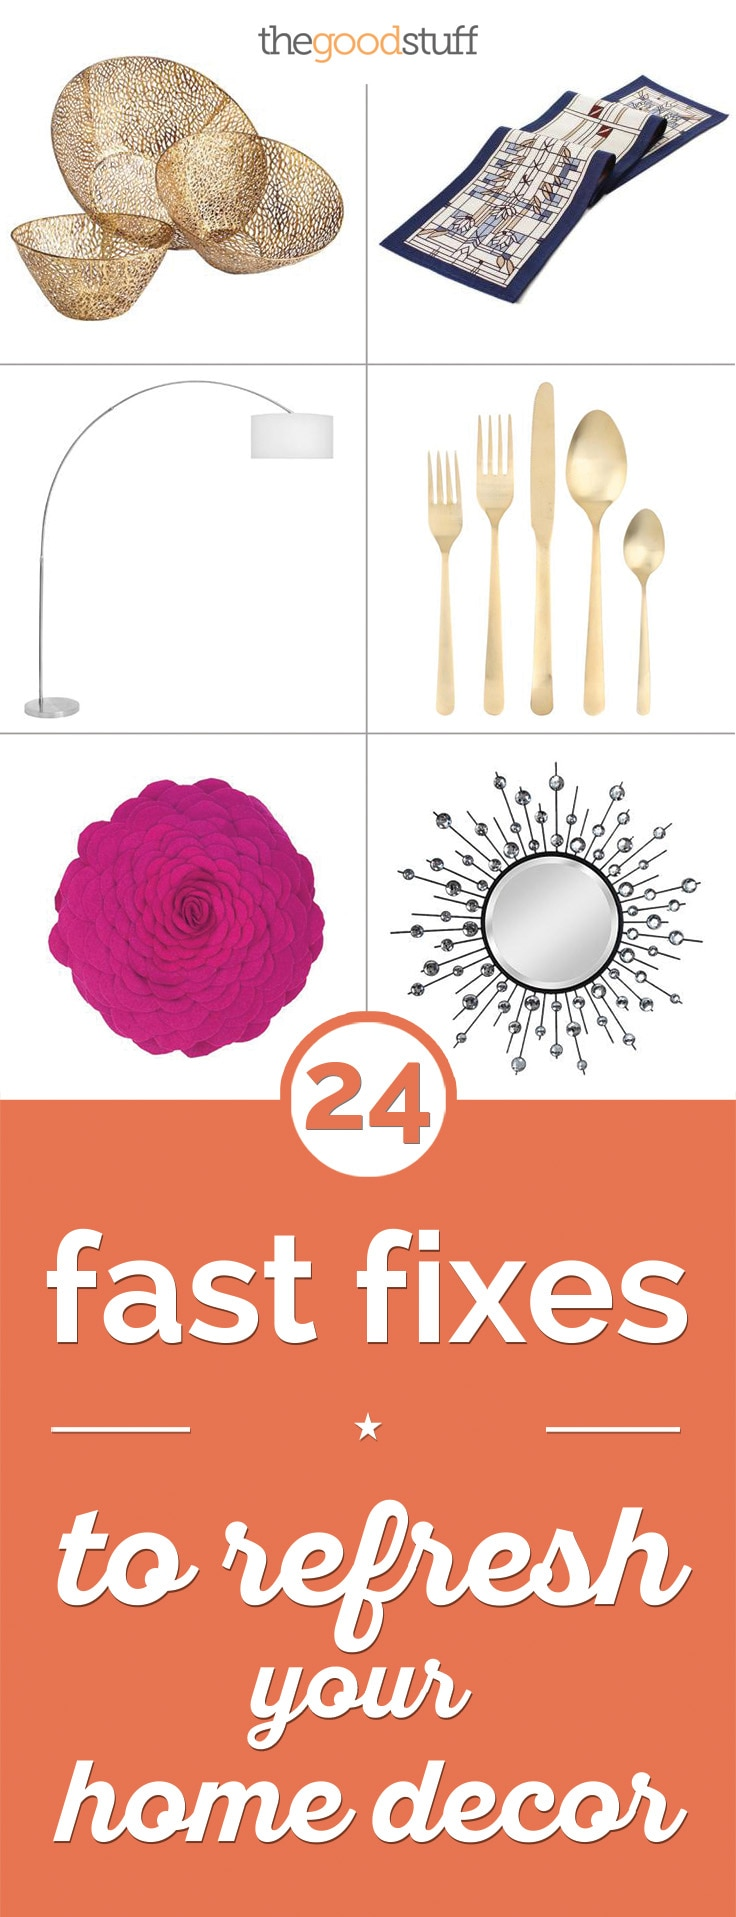 24 Fast Fixes to Refresh Your Home Décor | Coupons.com & Home Decorators Collection